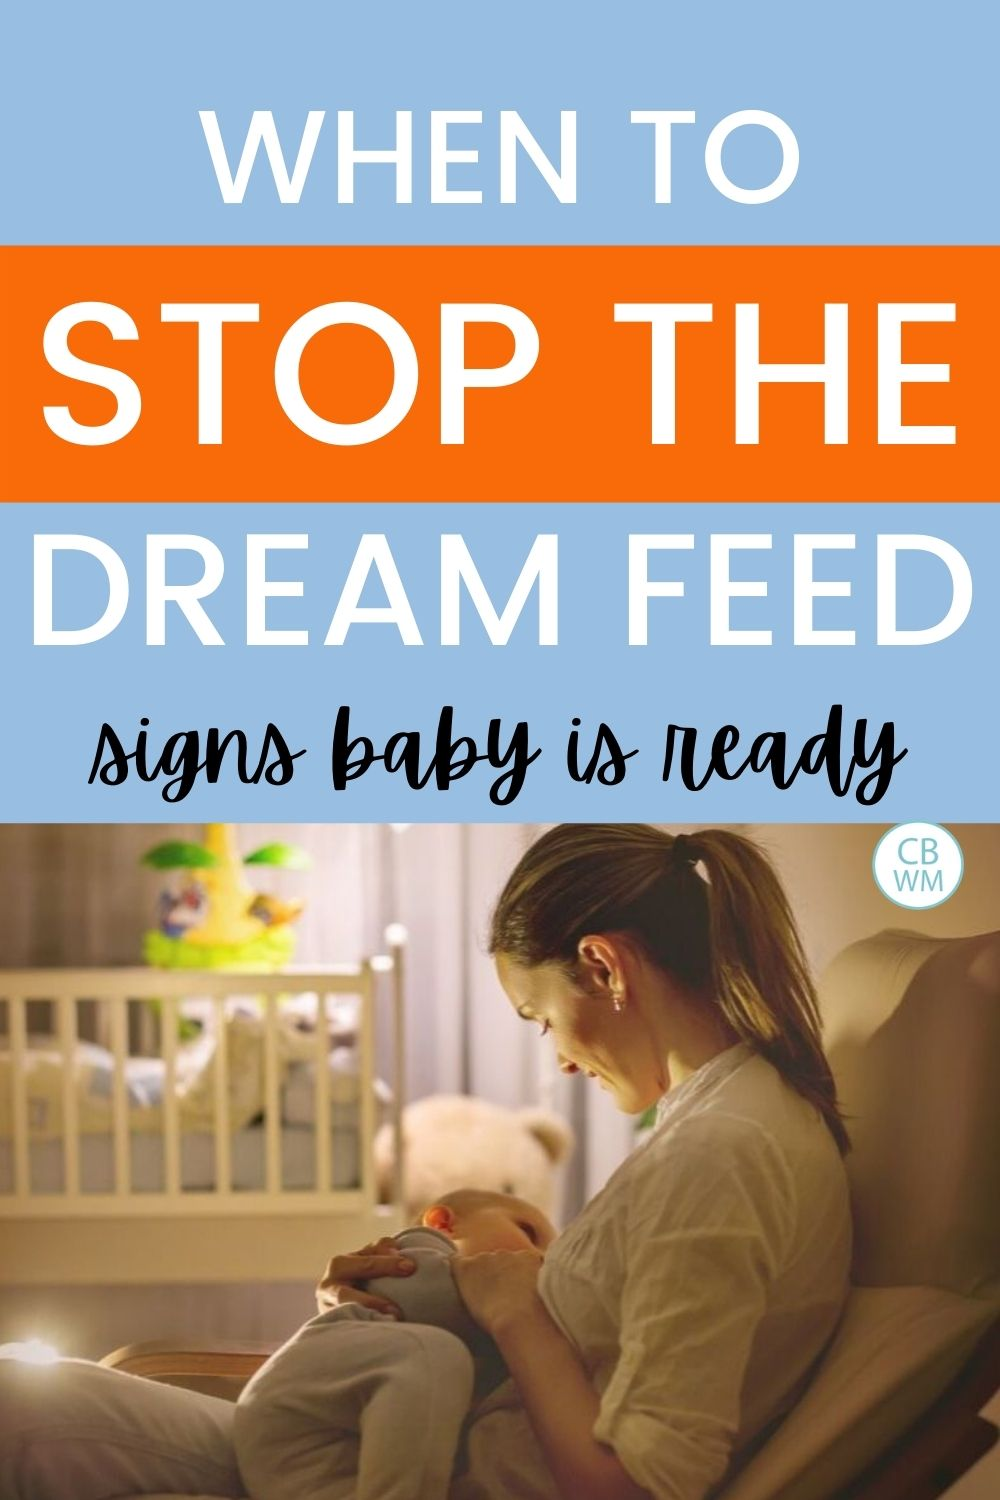 When to stop the dream feed pinnable image